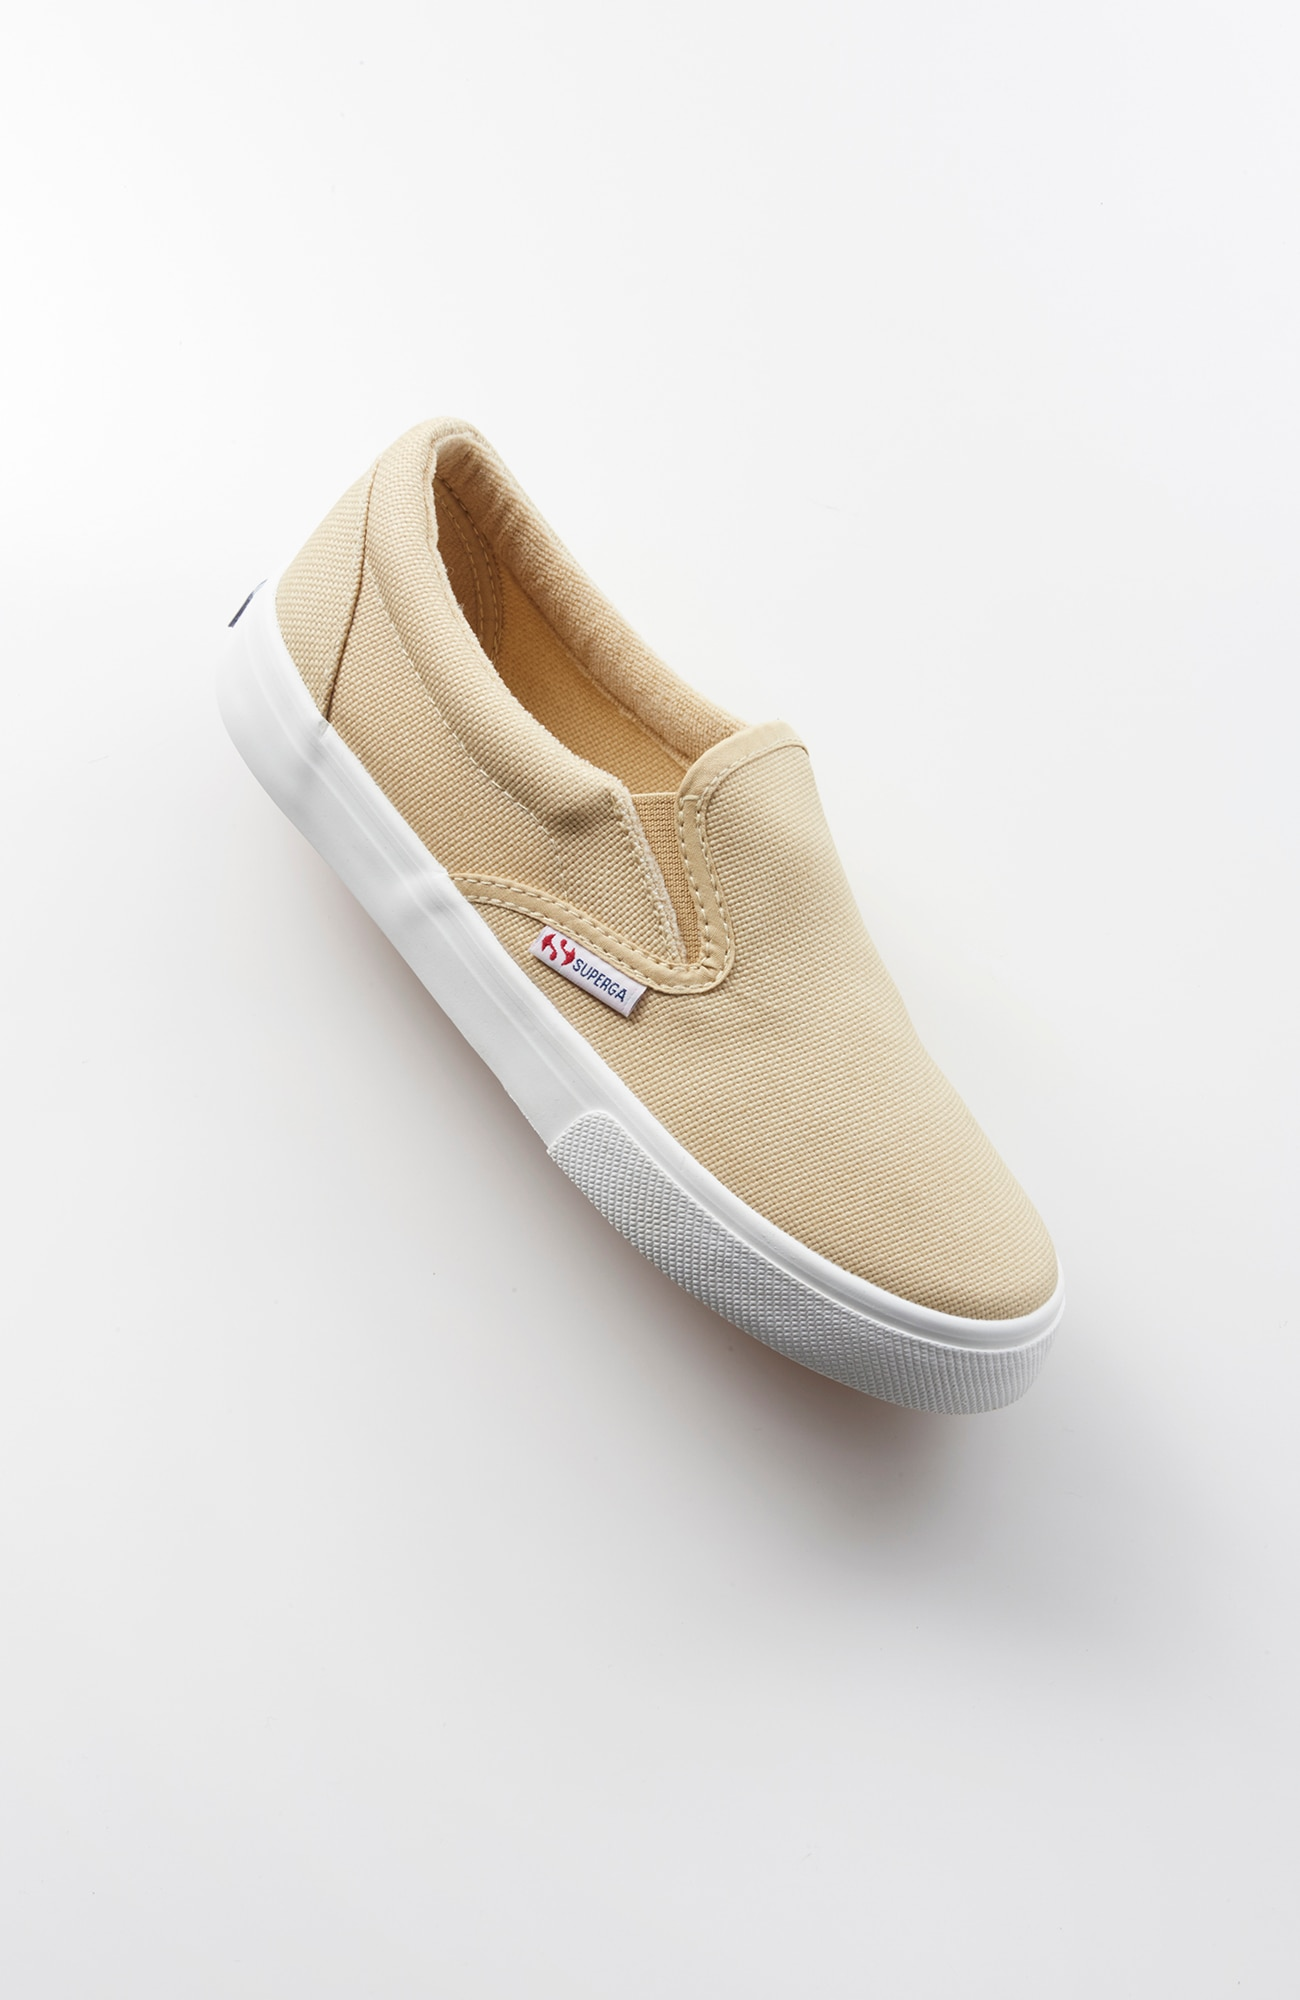 Superga® slip-on sneakers